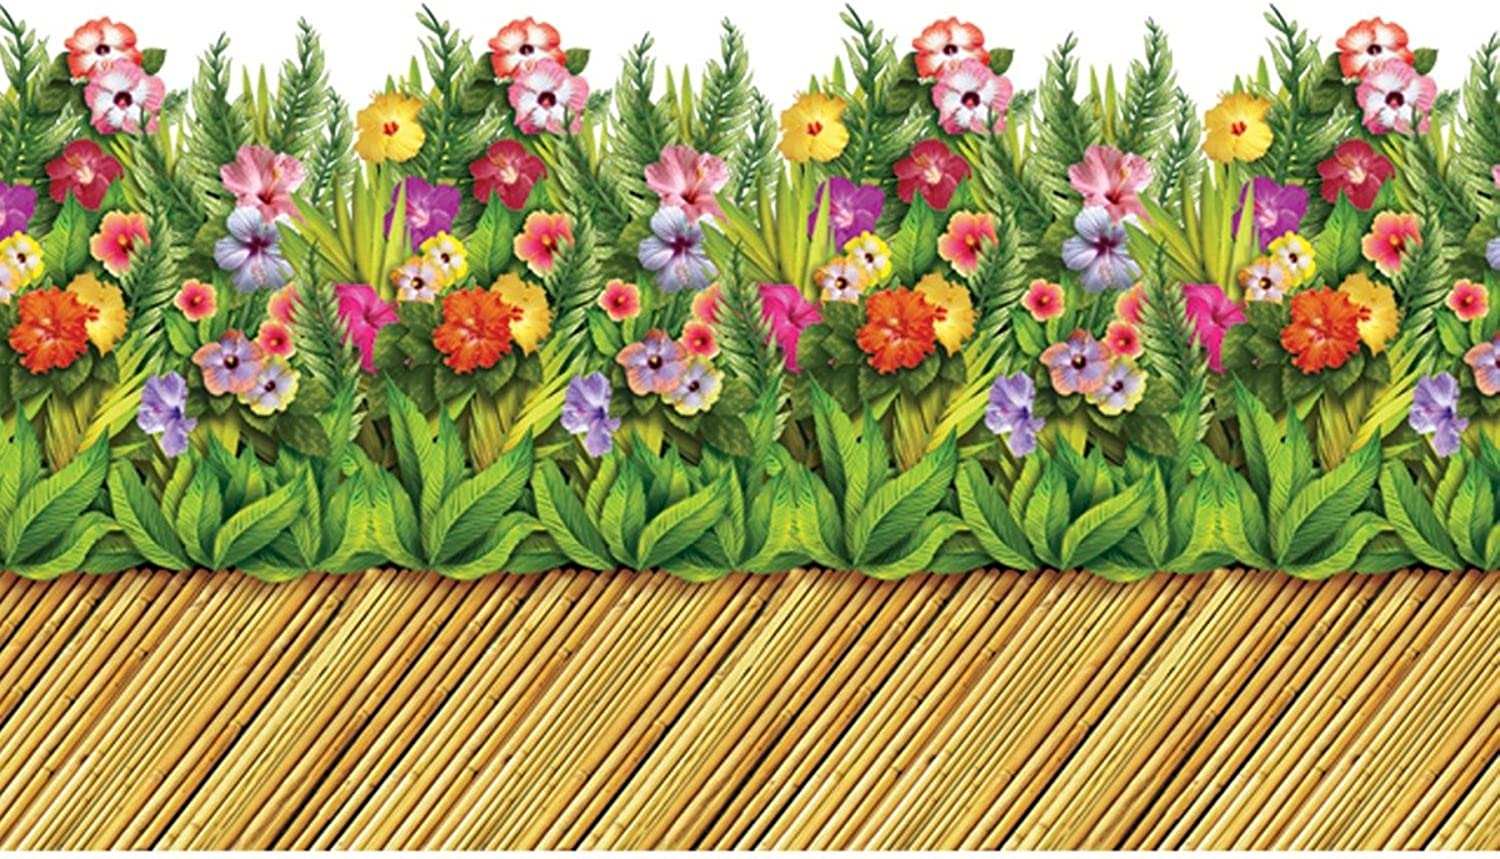 Pack of 6 InstaTheme Tropical Flower and Bamboo Walkway Border Decorations 30'